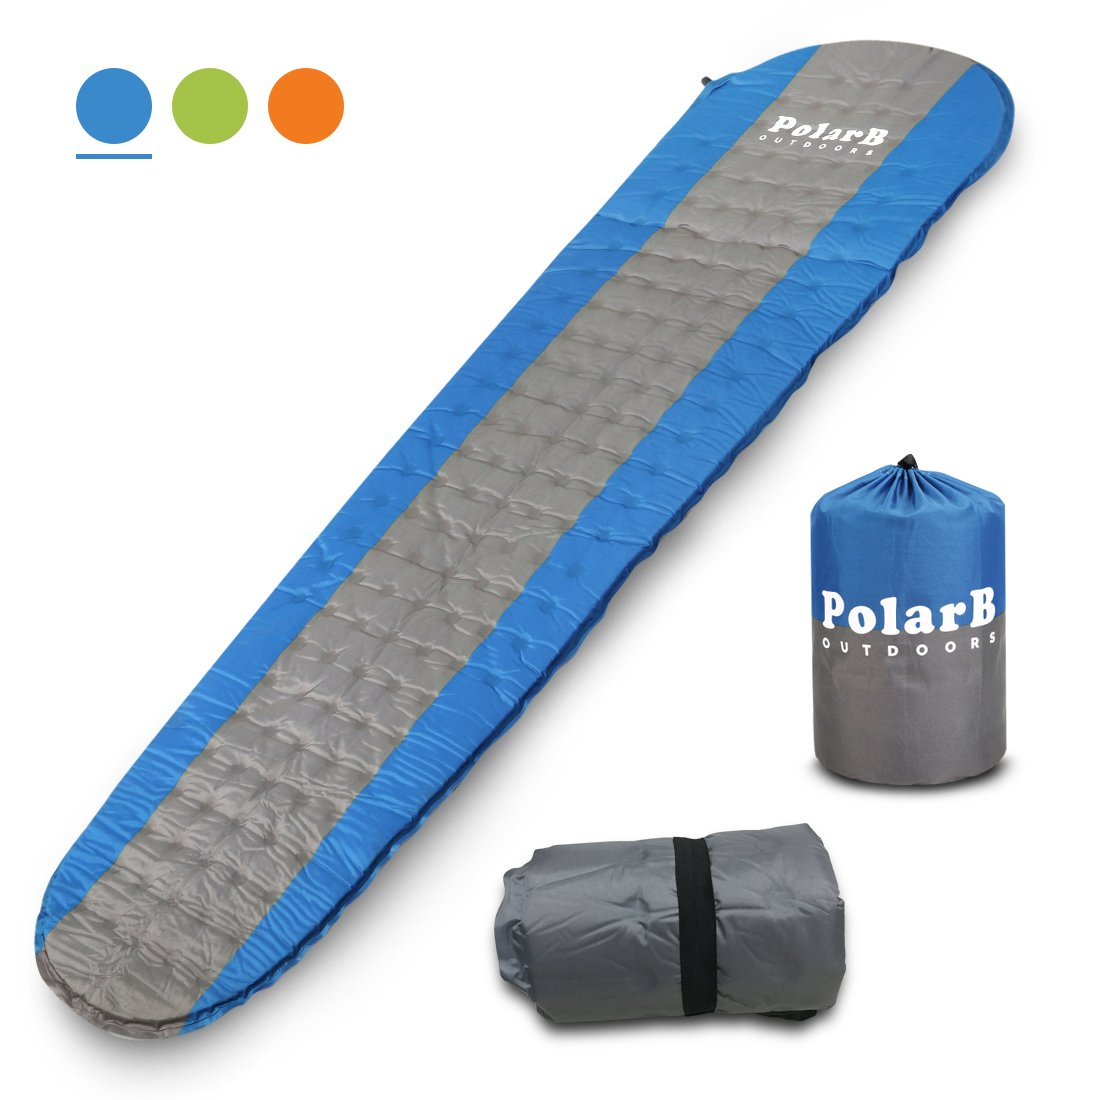 PolarB VVIP Self Inflating Sleeping Pad for大人&子供 – Largeサイズで、Great forバックパッキング、キャンプ&ハイキング – プレミアム素材、Thick Foam Padding、コンパクト、軽量、丈夫、Insulated B074N18XD4  ブルーグレー